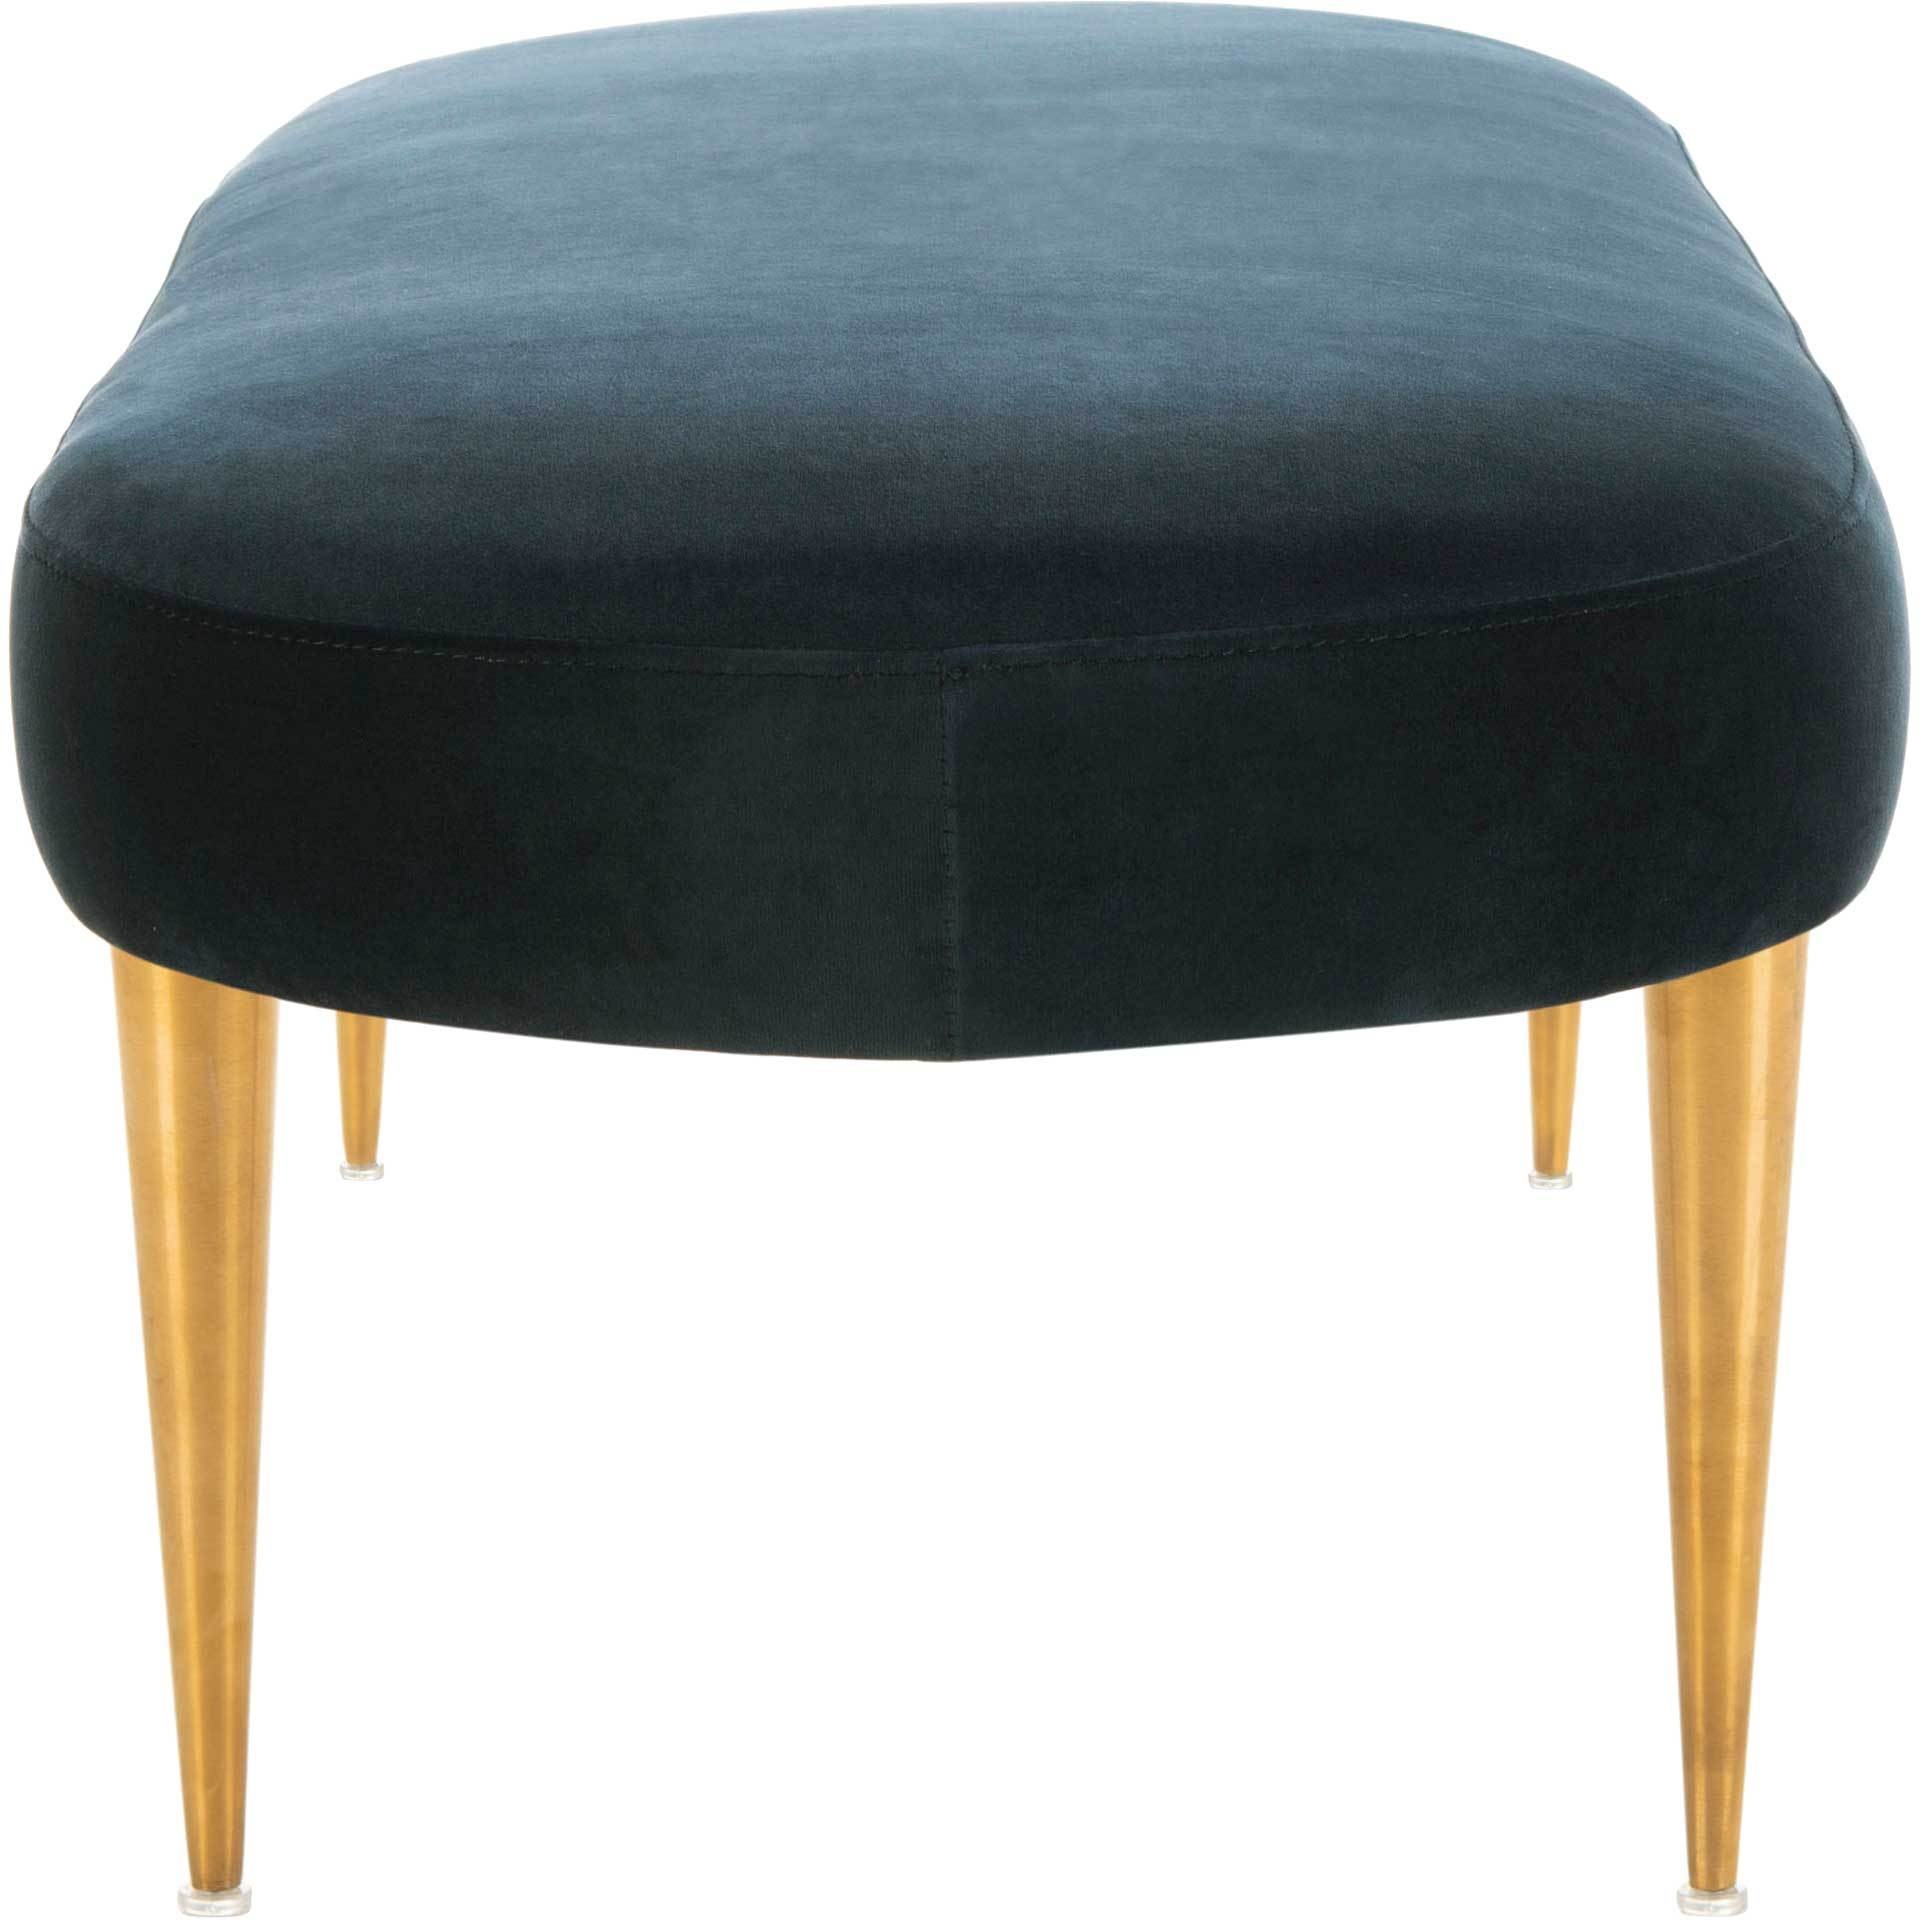 Colette Velvet Oval Bench Navy/Gold